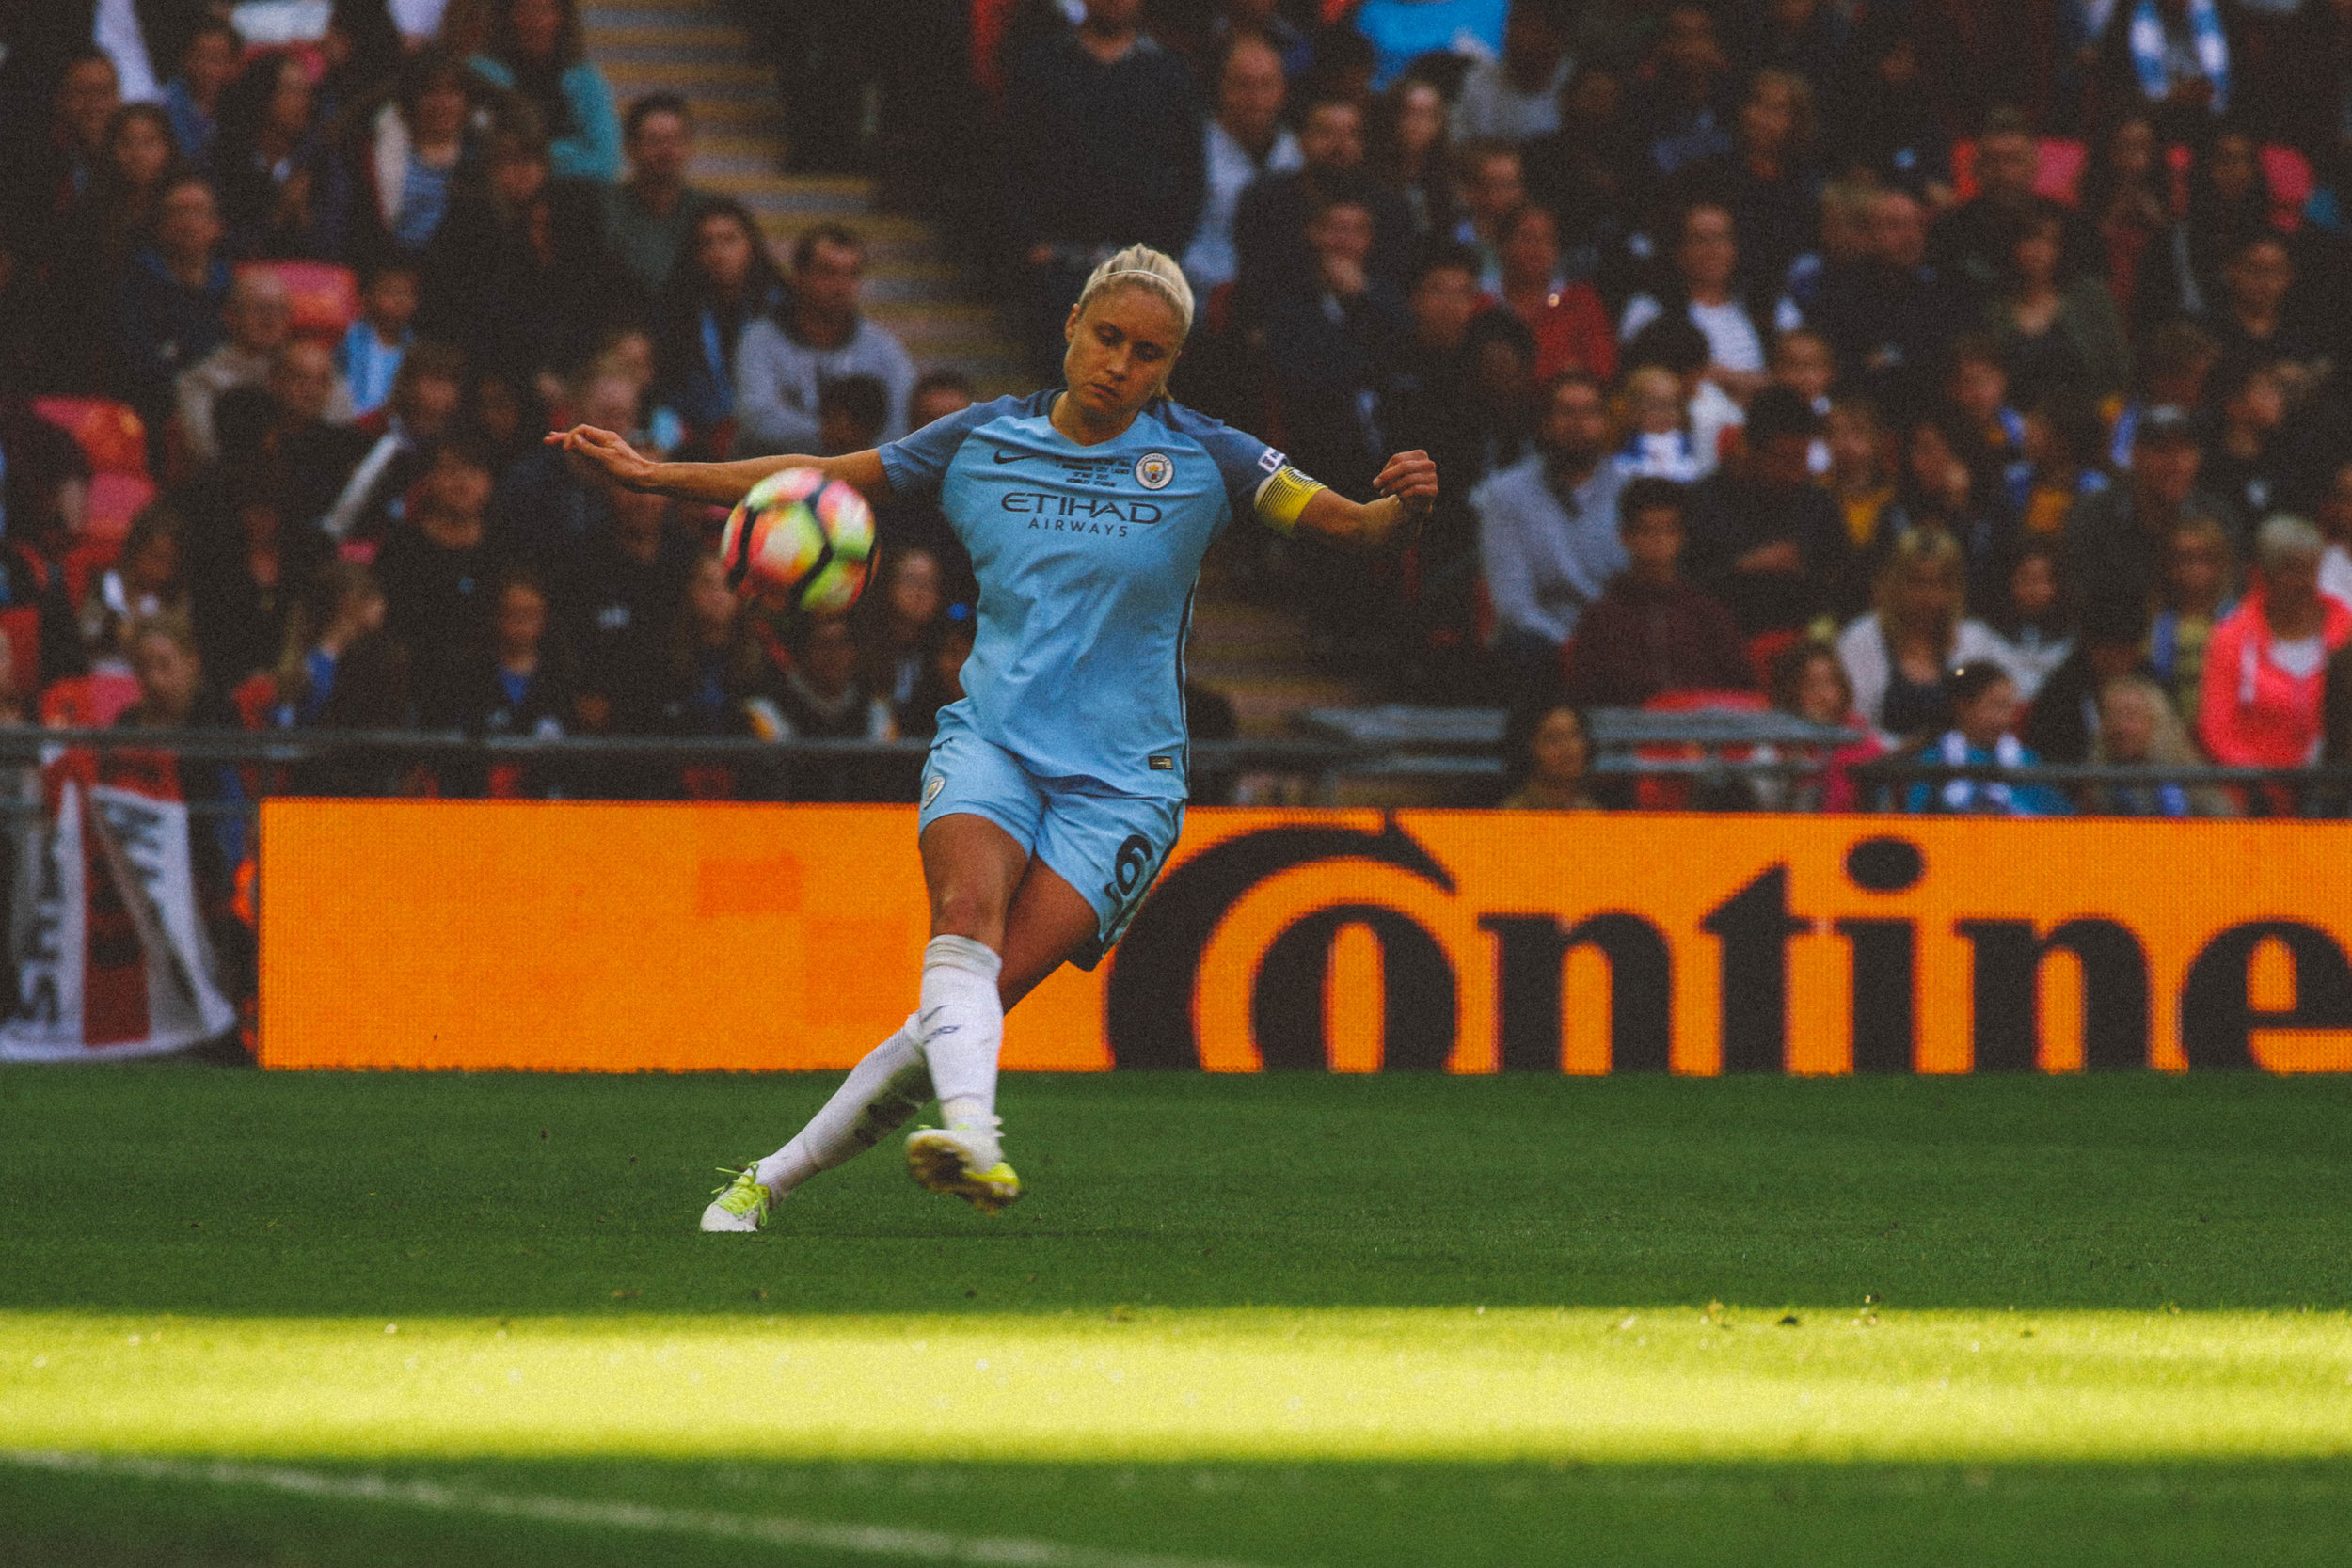 Steph Houghton | Click to view full screen